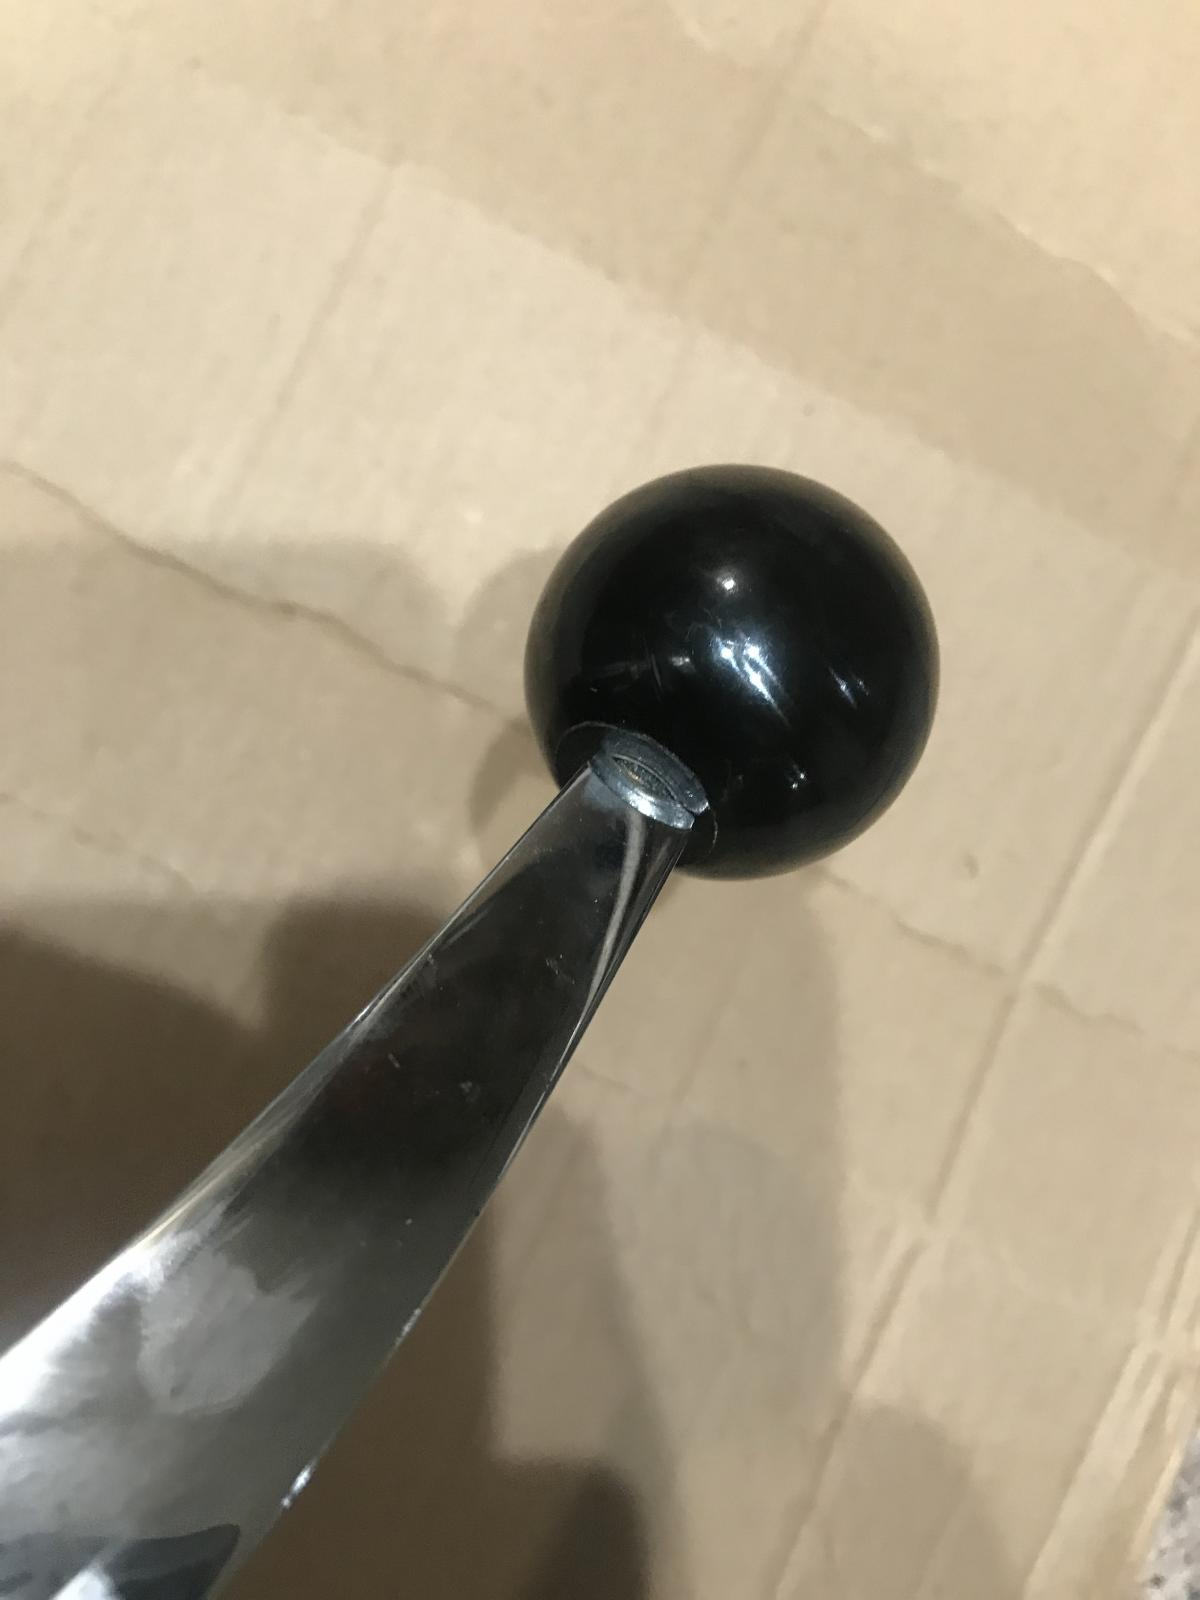 New Old Stock VANGUARD shifter for restojohnny